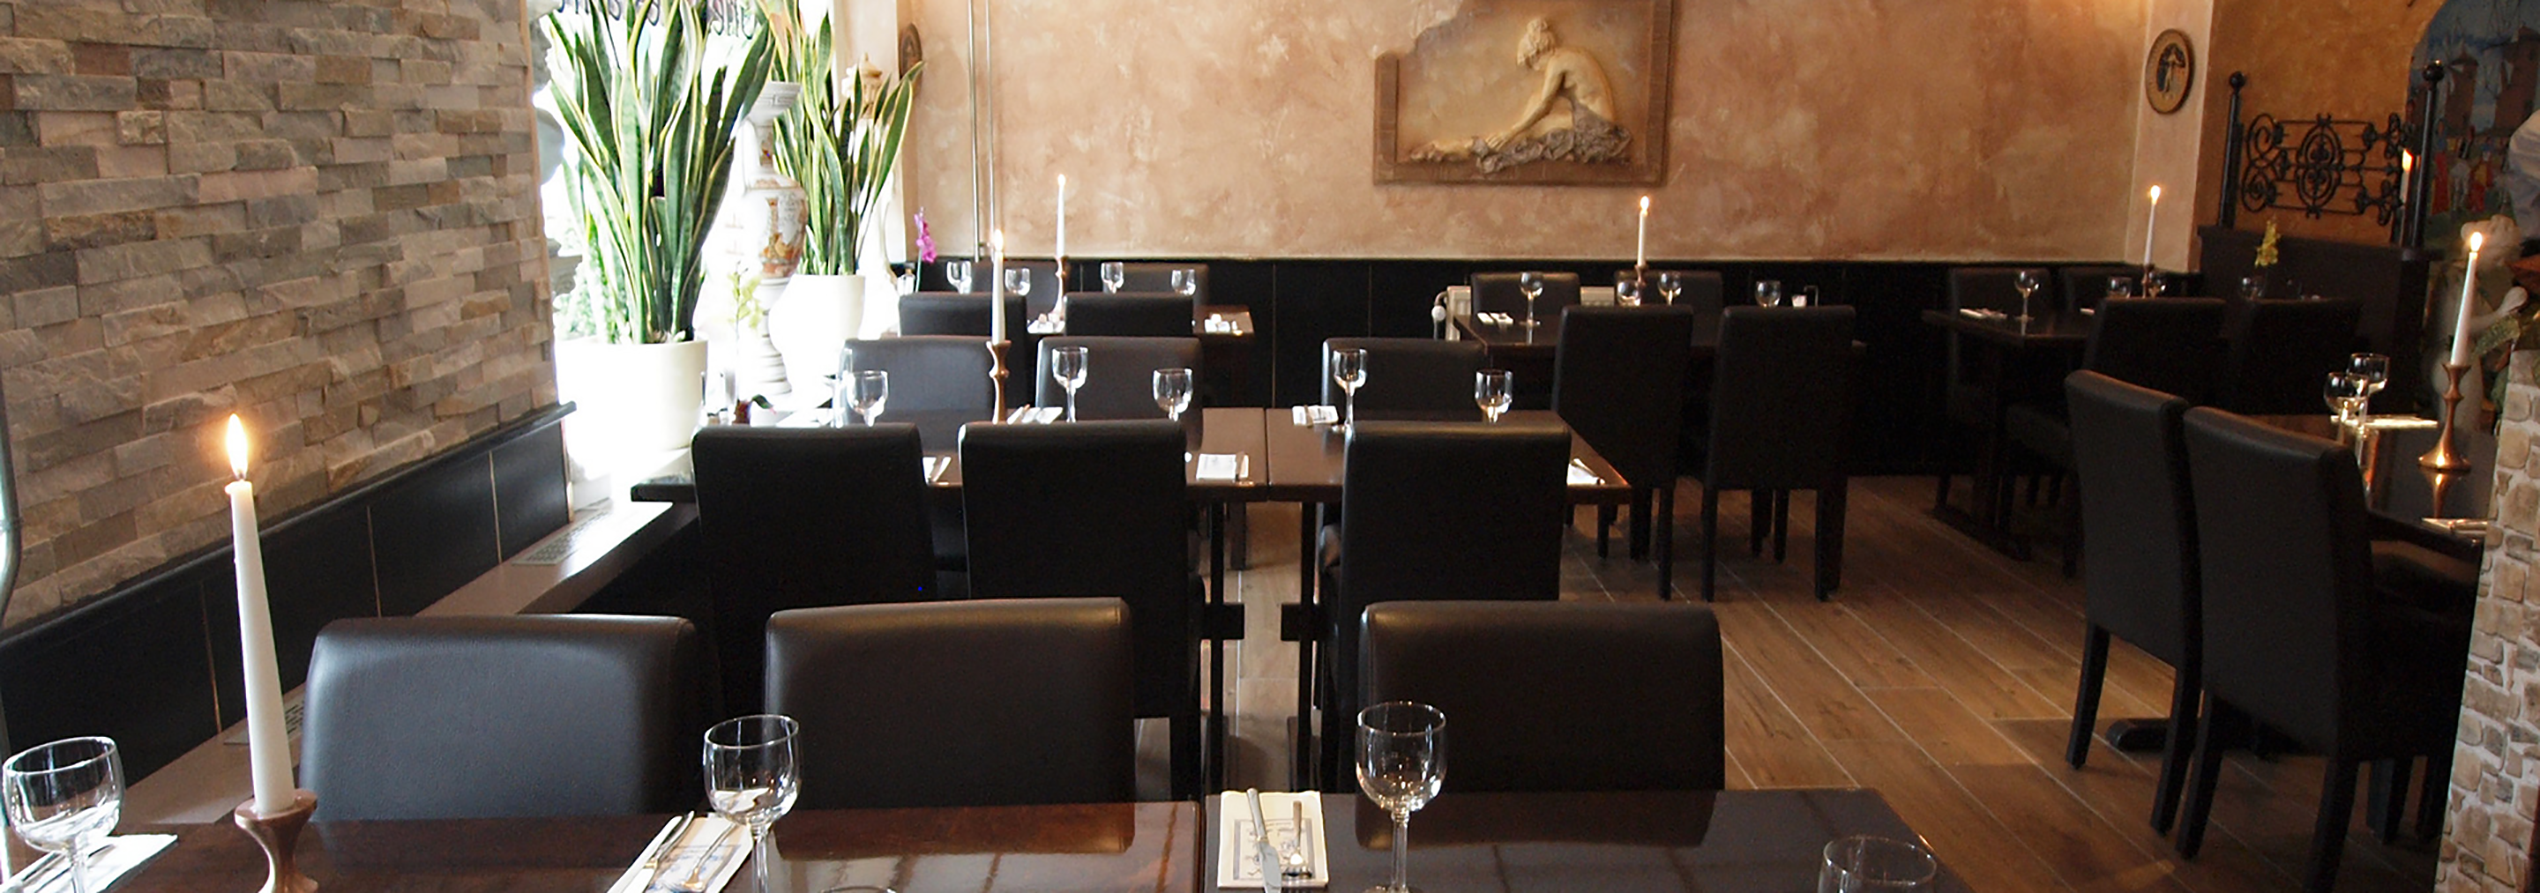 apollo grieks restaurant grave interieur